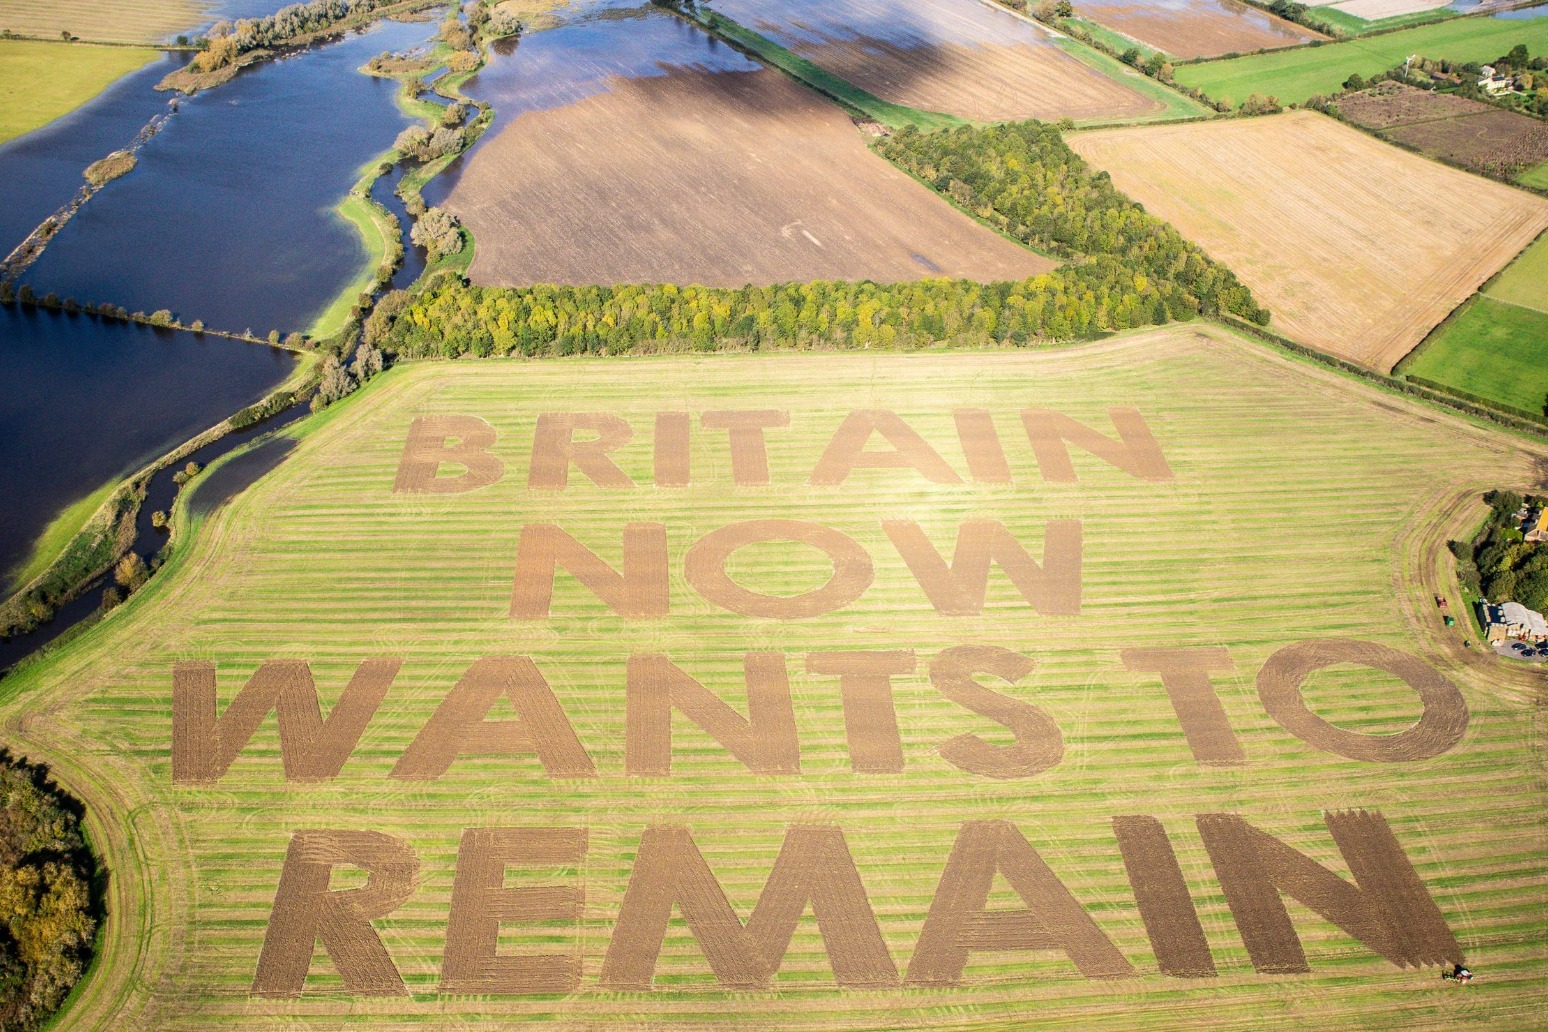 Huge Brexit message appears in Wiltshire